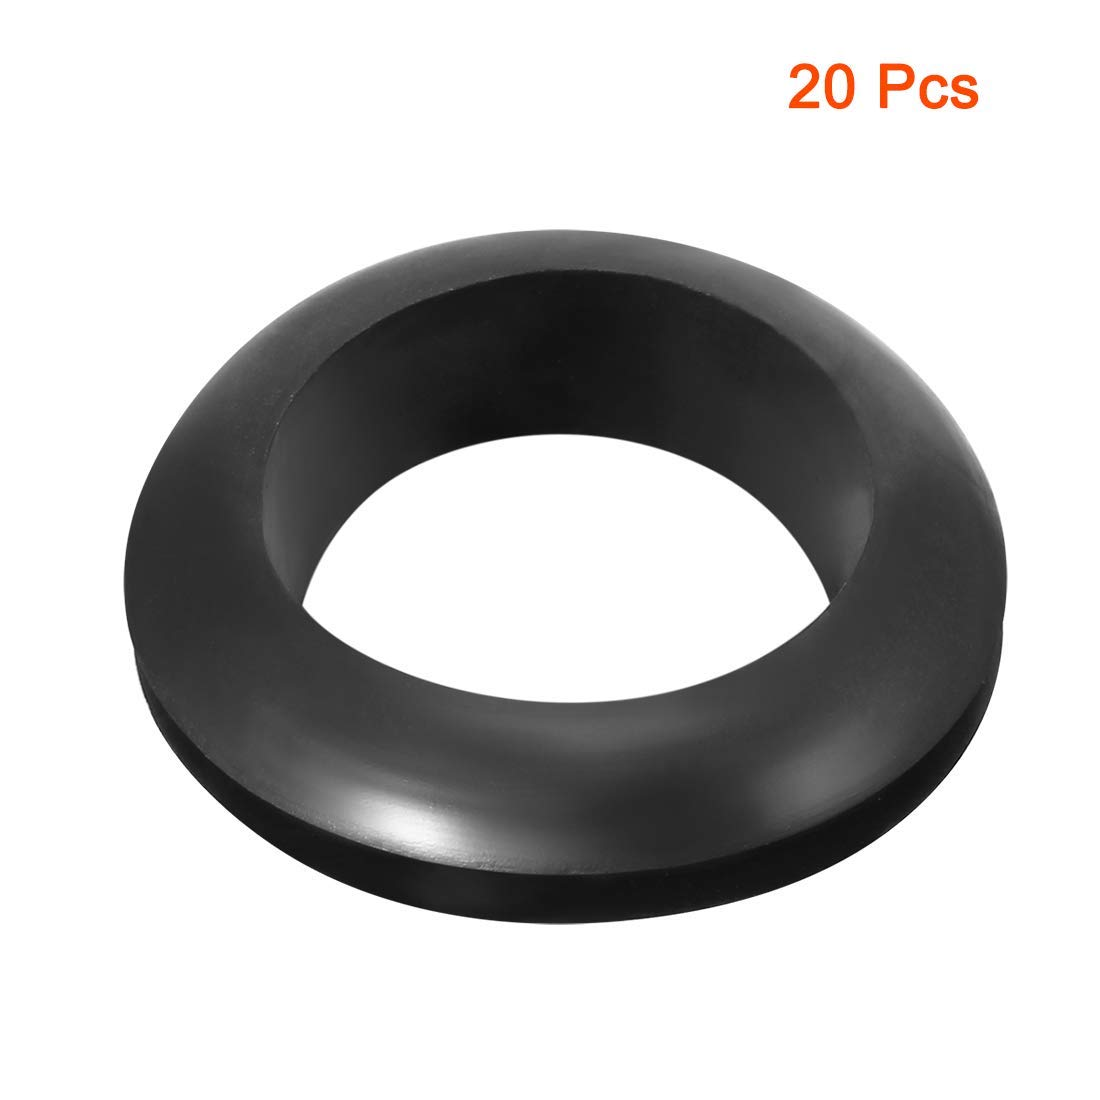 Wire Guard Oil Resistant Armor Rubber Washer 22 mm Internal Diameter 30 Pieces Black